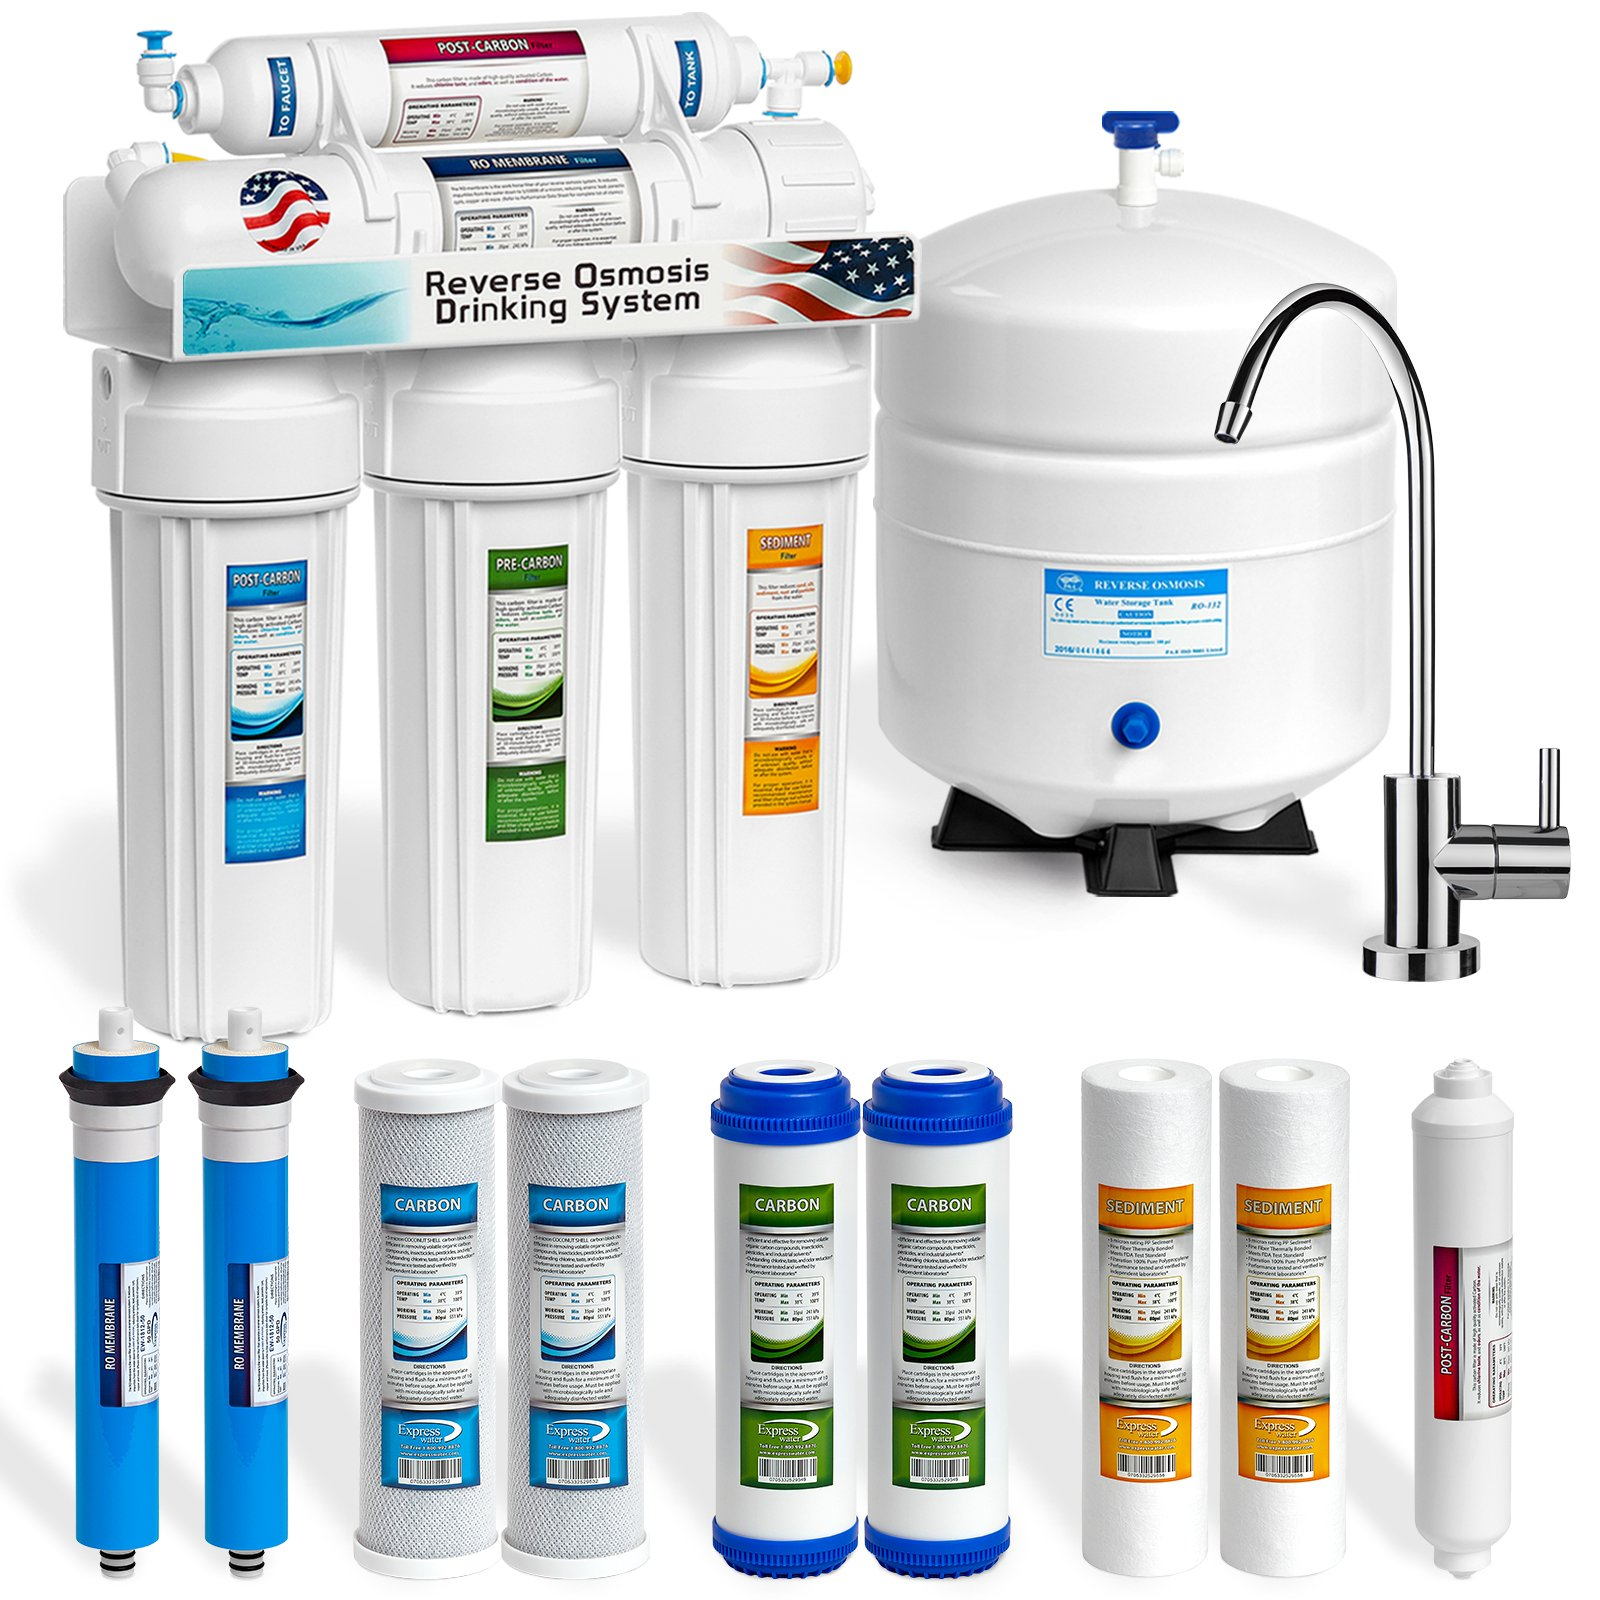 Express Water RO5MX2 5-Stage Home Drinking Reverse Osmosis Under sink Water Filtration System, 50 GPD, Modern Chrome Faucet PLUS Extra 5 Filters, Steel Tank/Brass Faucet/BPA Free Plastic